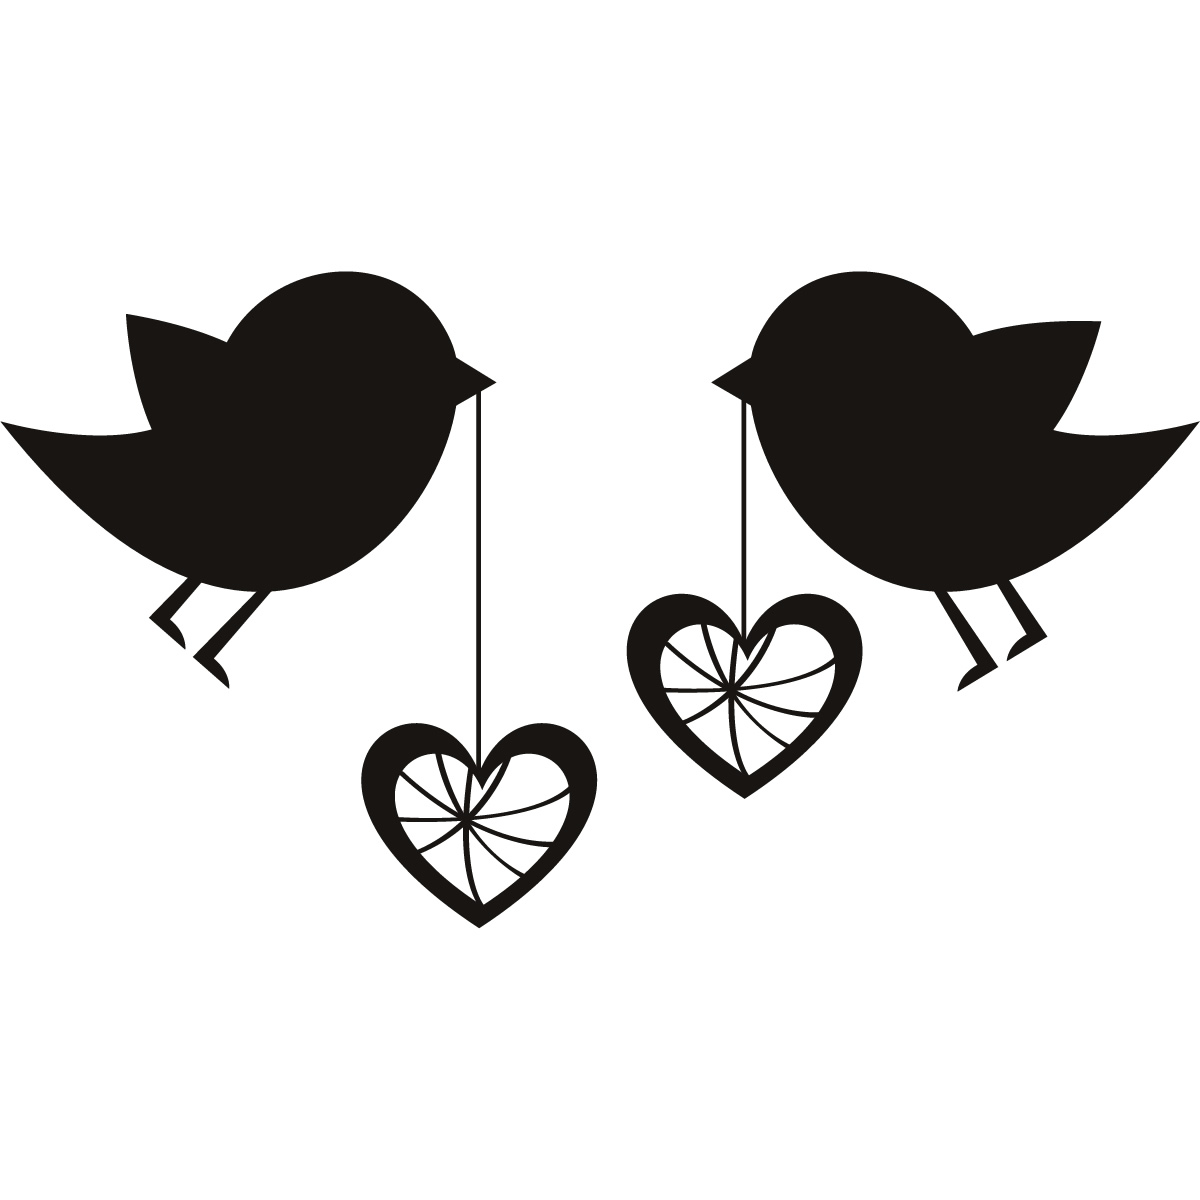 Lovebird clipart #3, Download drawings